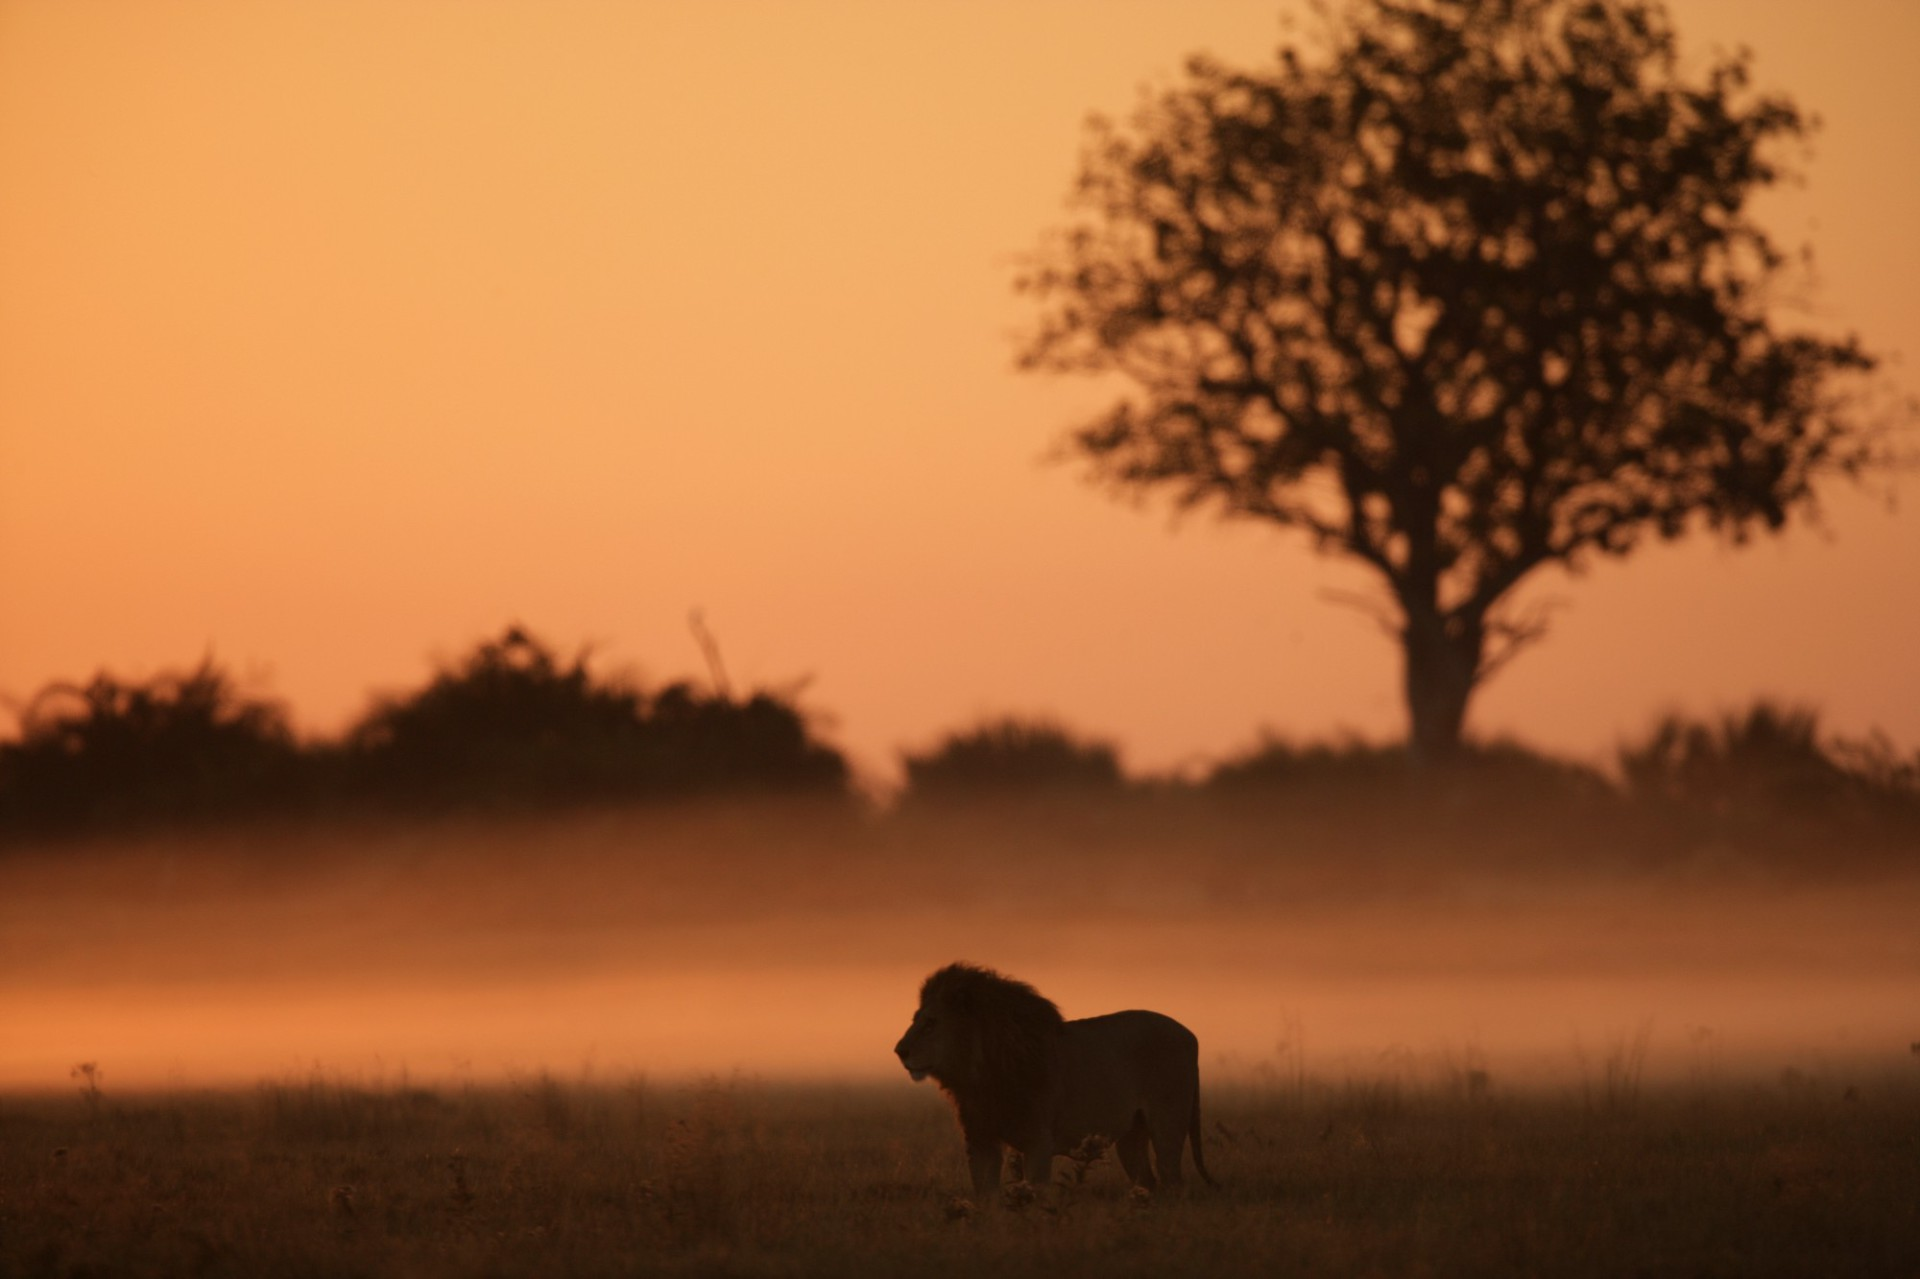 Cecil's Legacy: Protecting Big Cats in Africa